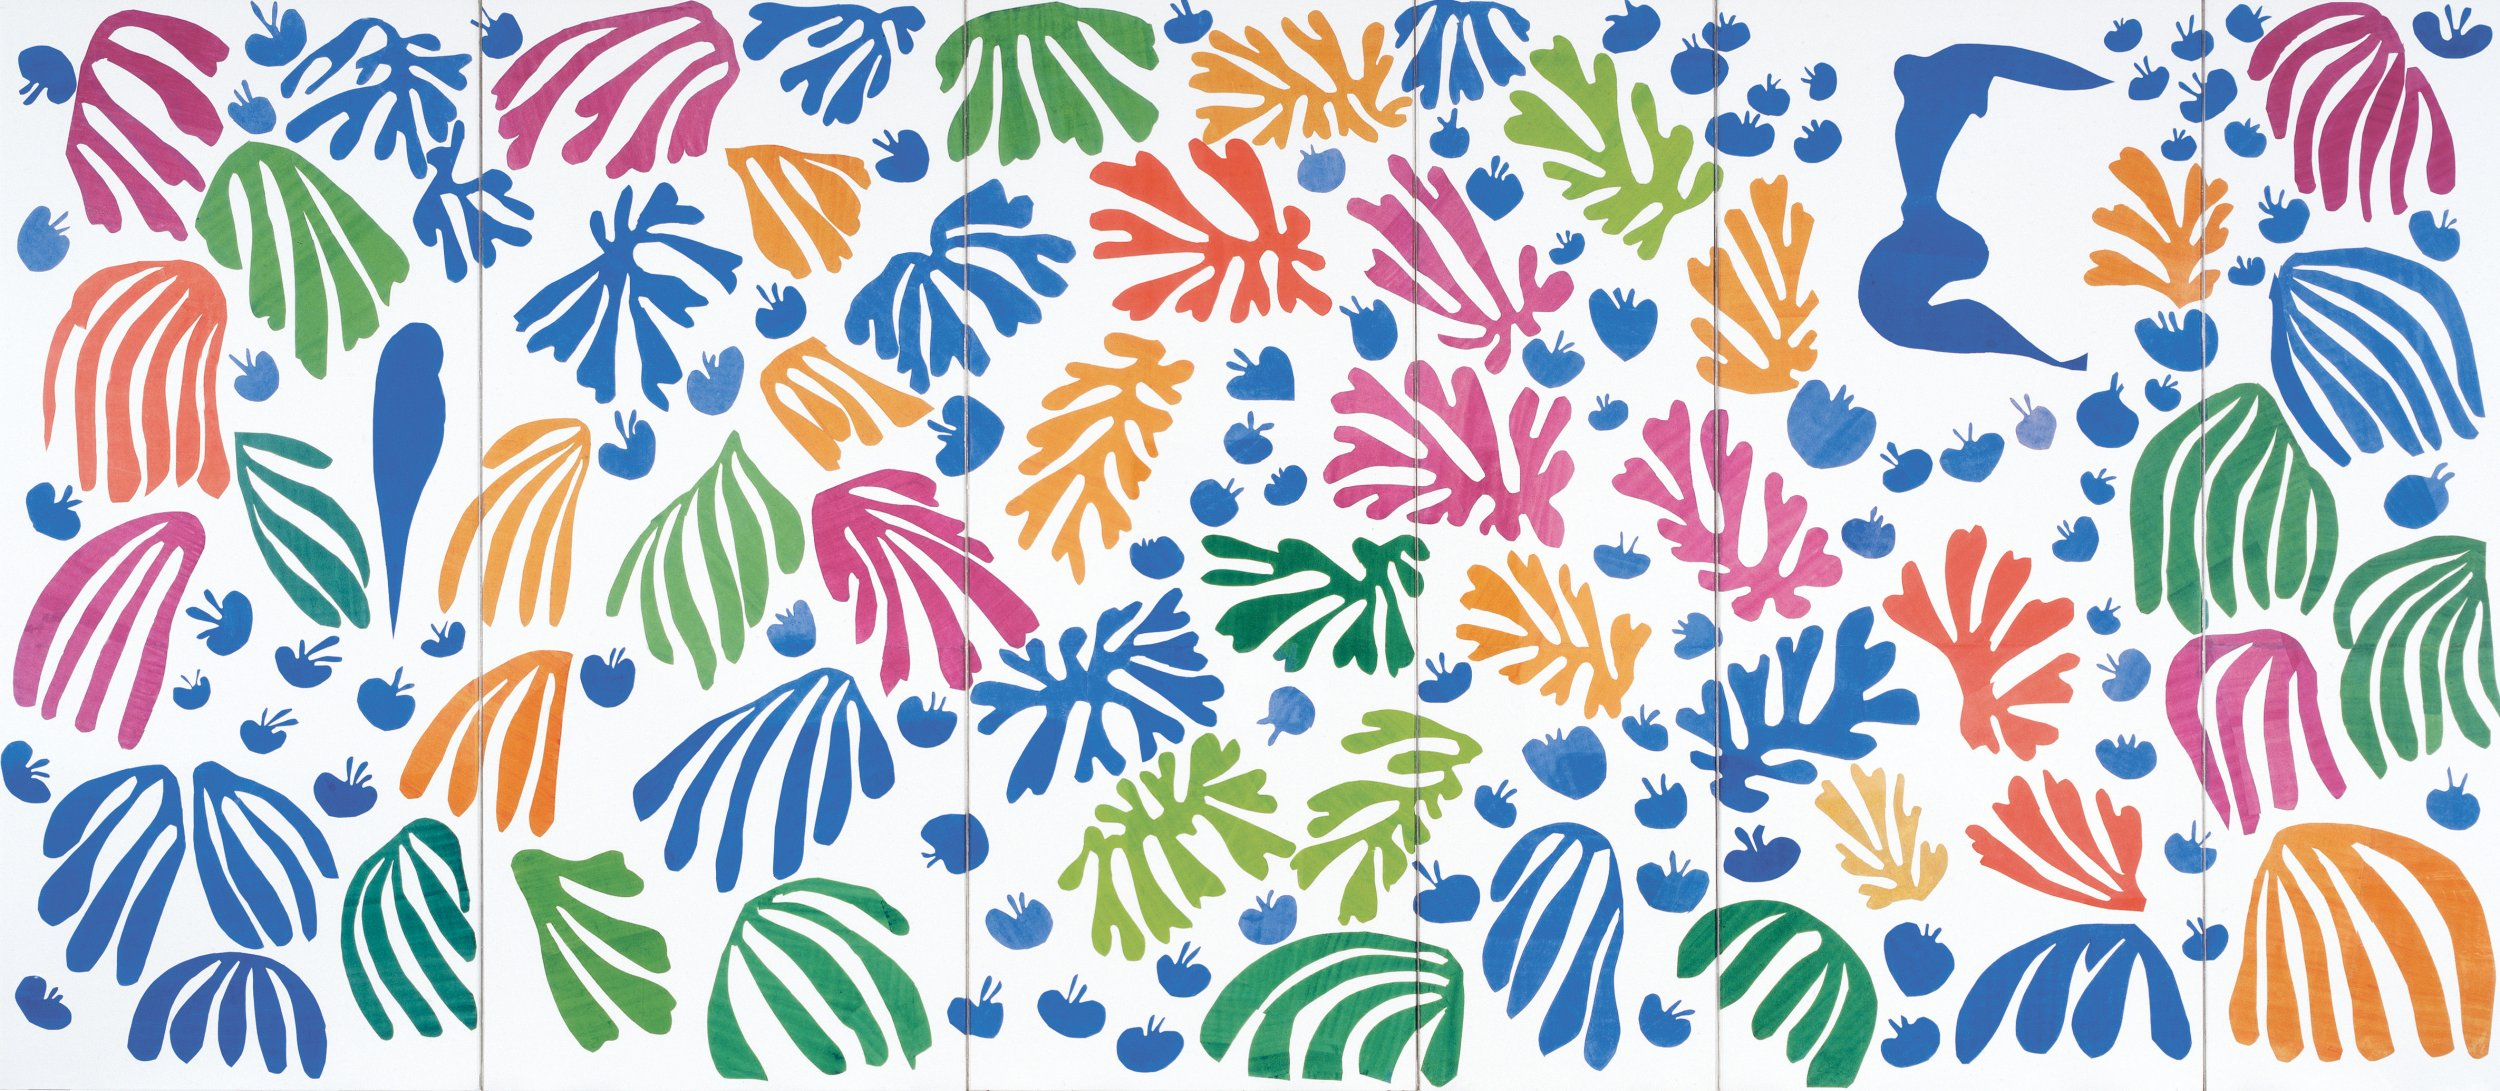 GTG art workshop online: Matisse